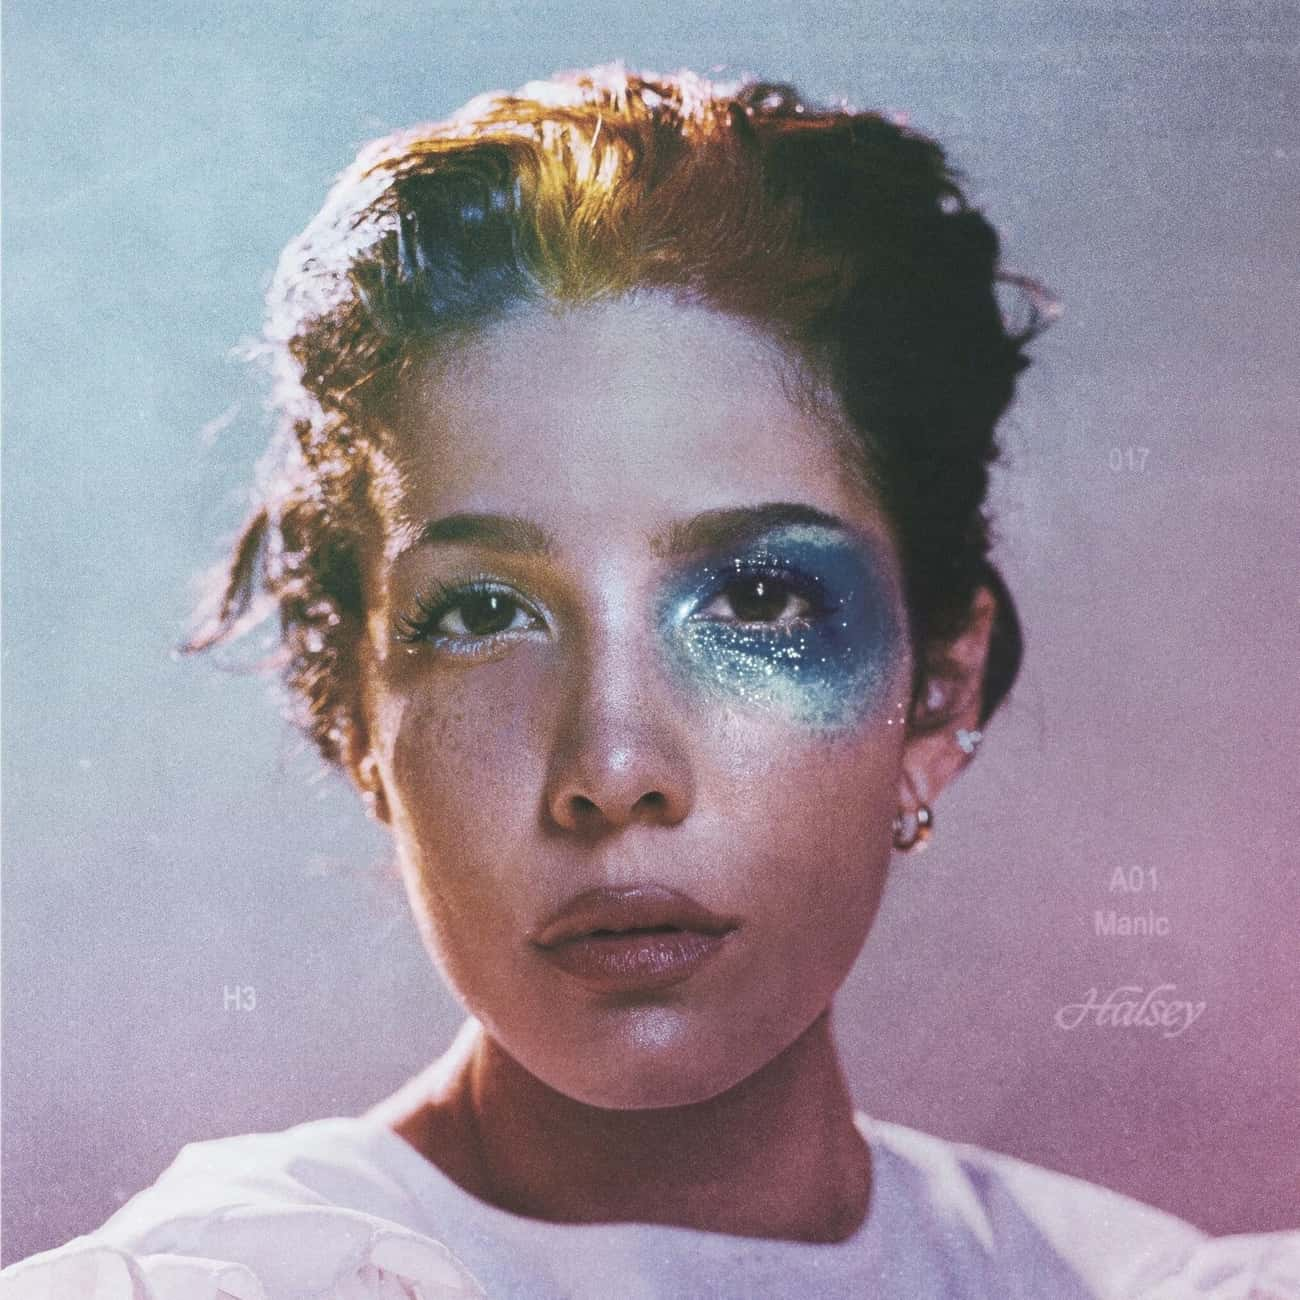 Manic is listed (or ranked) 3 on the list Every Halsey Album, Ranked